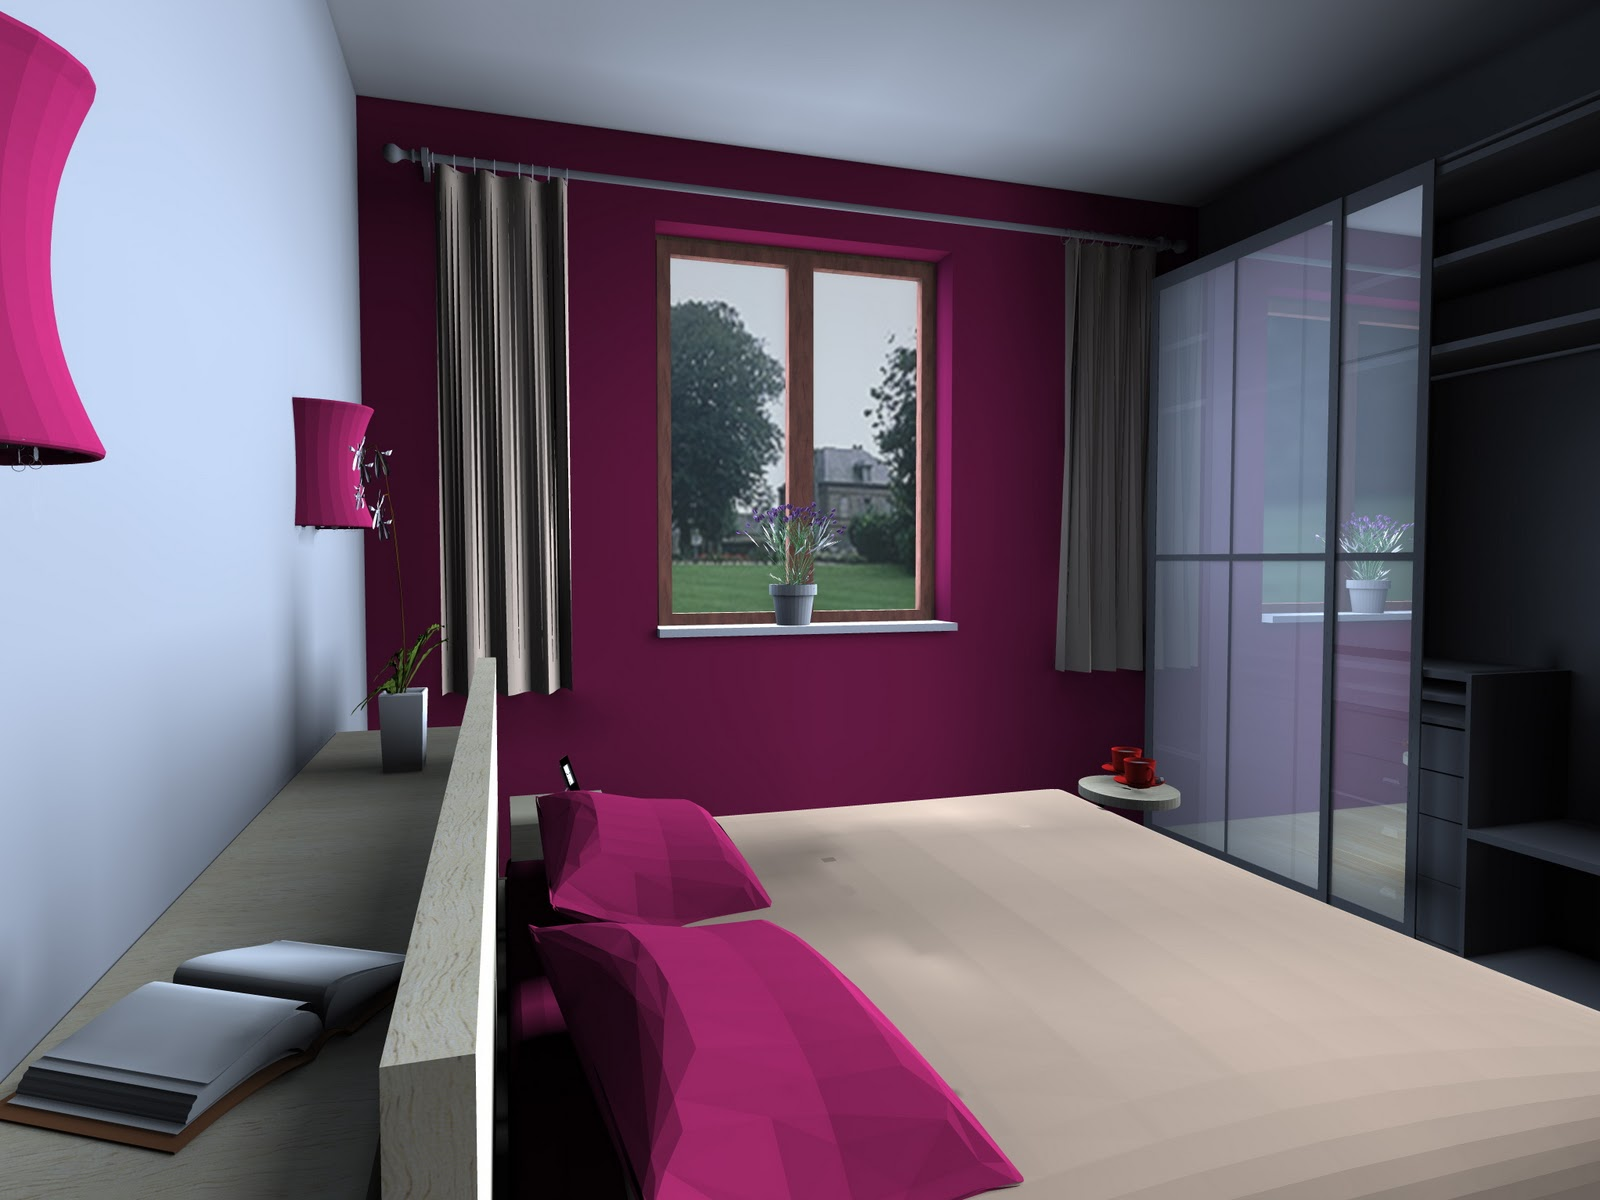 ... Interior Designers & Architects: Una camera da letto colorata